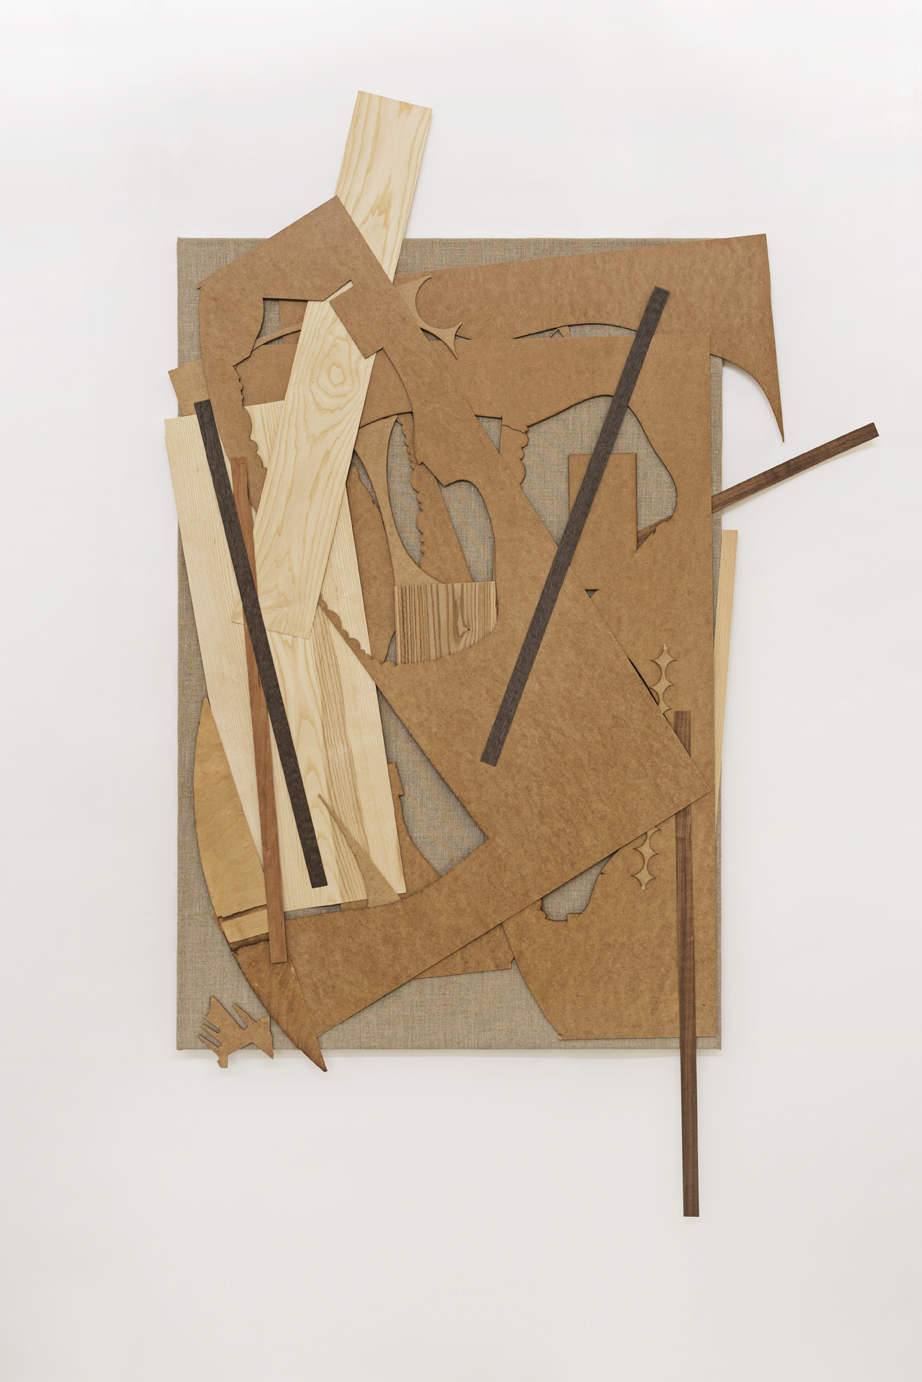 Kultur II, (Culture II), wood venere on canvas, 200 x 175 cm, 2018